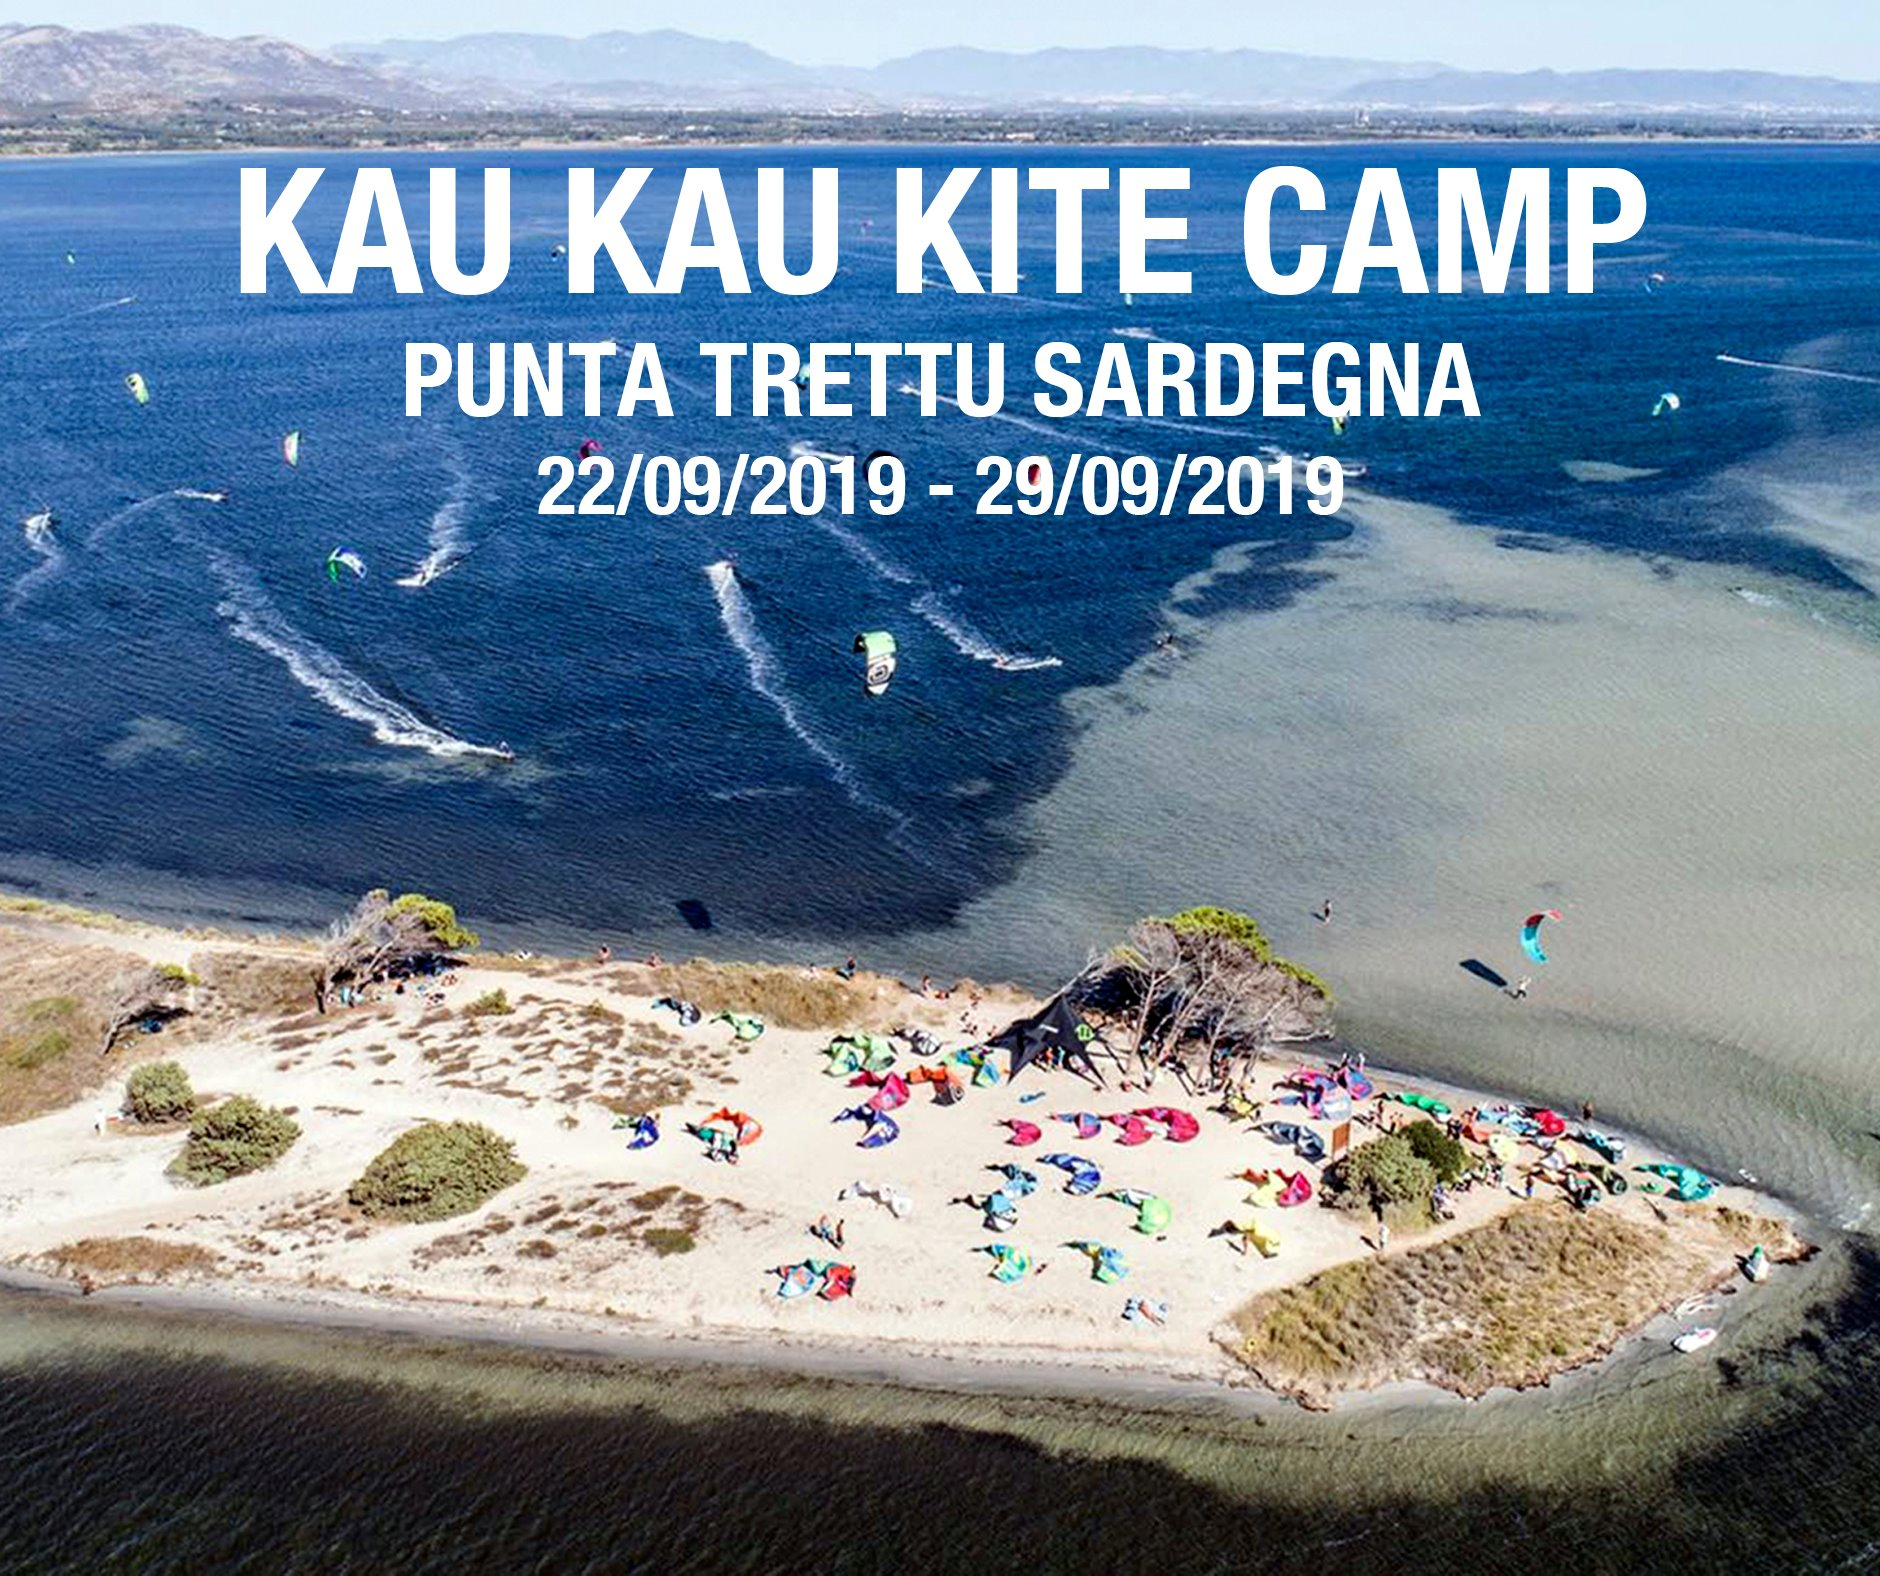 Kaukau club camp Punta Trettu